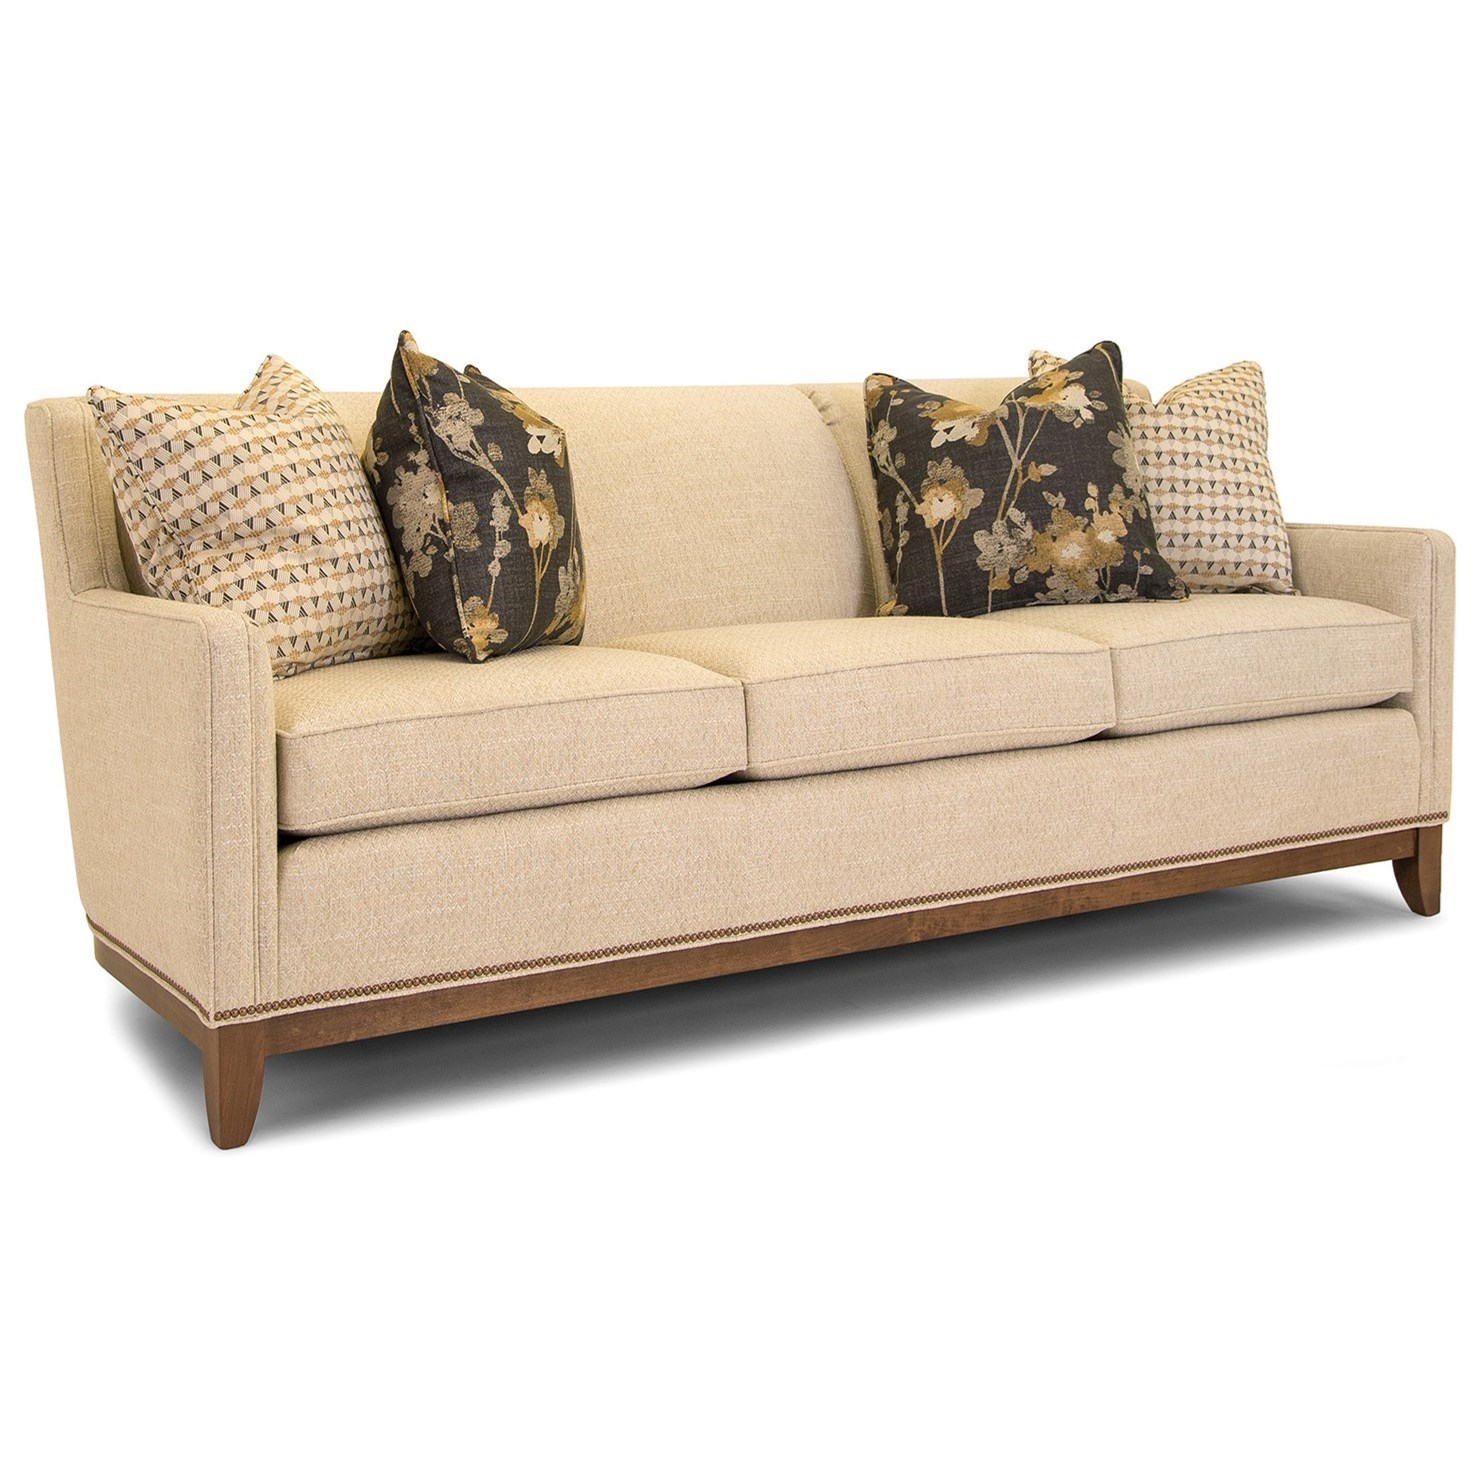 258 Sofa by Smith Brothers at Rooms for Less